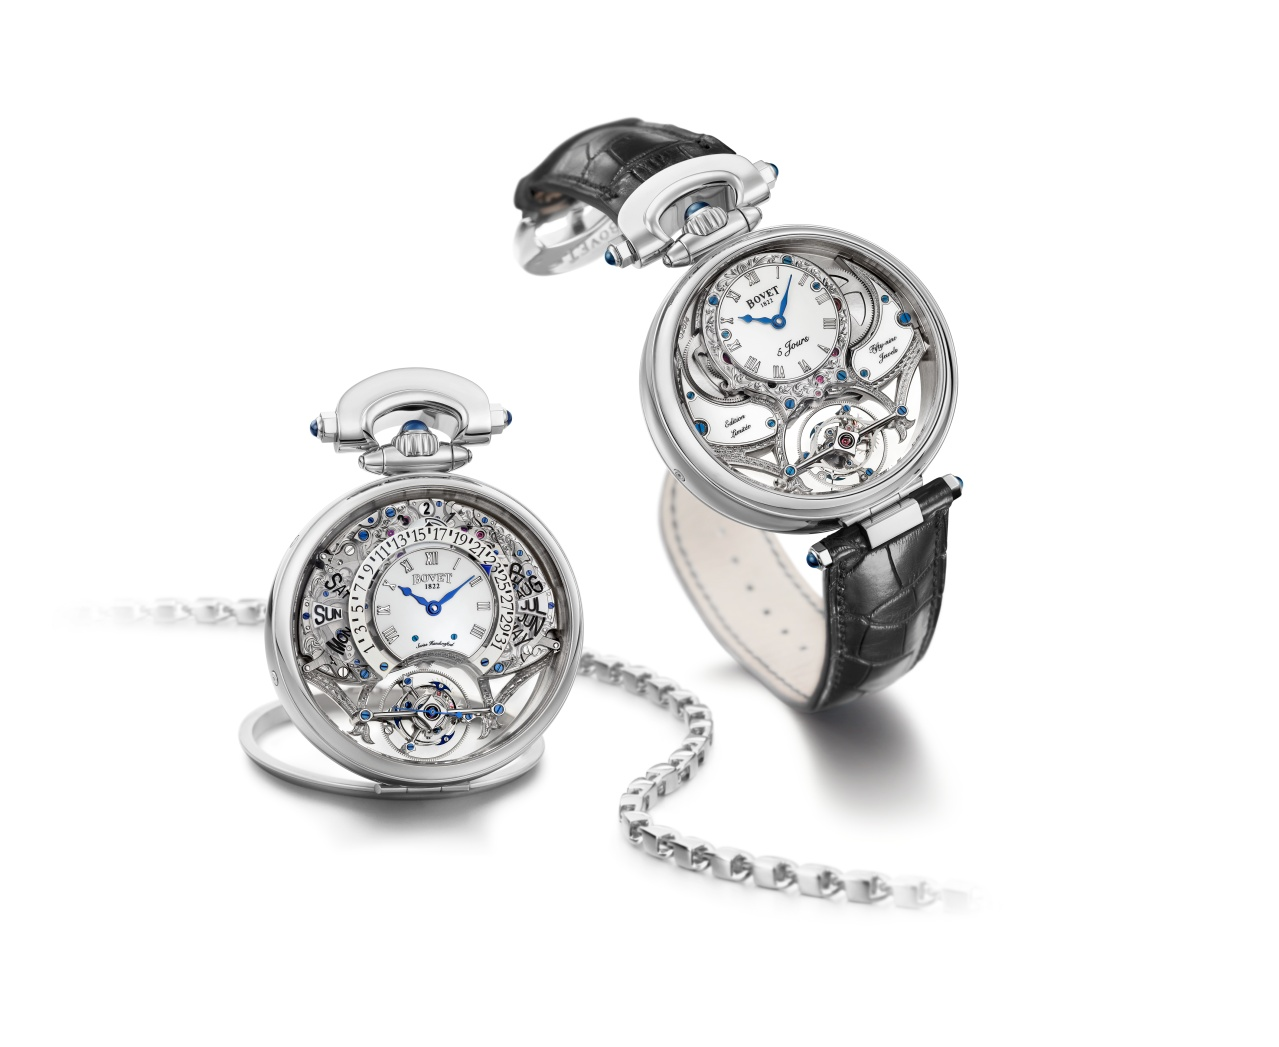 Bovet Watch   Amadeo Fleurier Grandes Complications   Ref. Nr.  AIQPR002    Call 312-944-3100  | For Availability